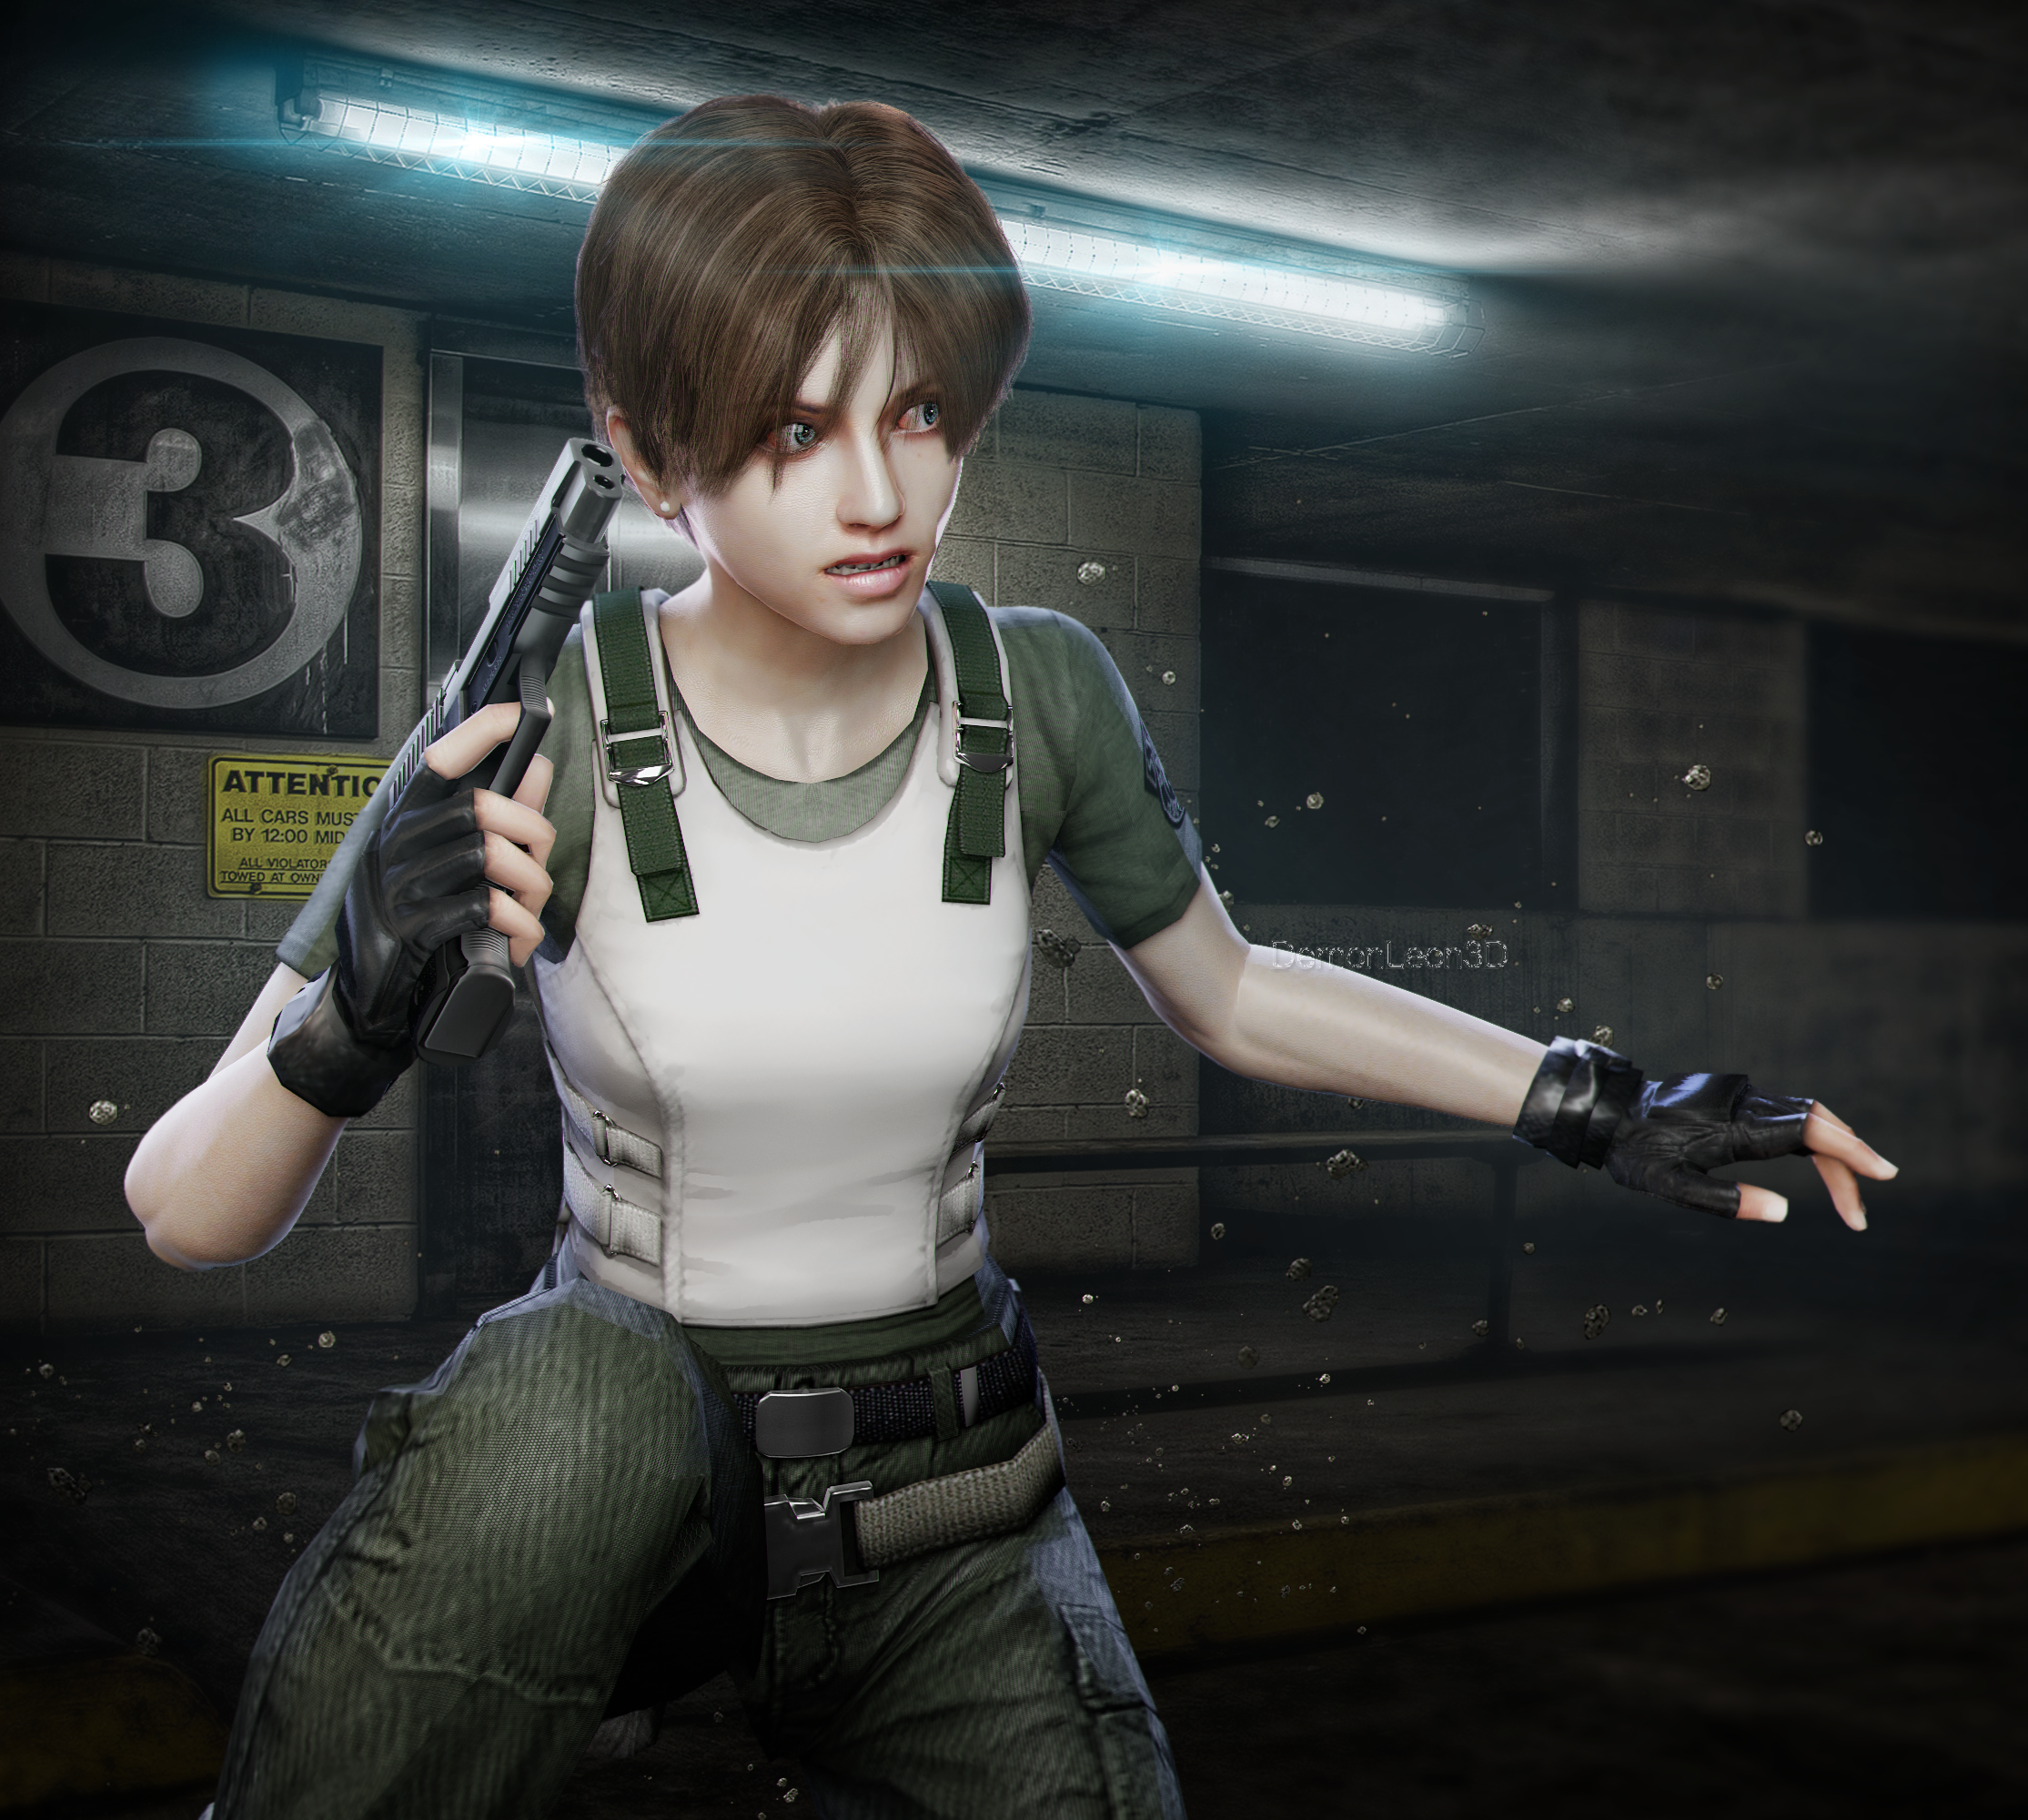 By Chambers: Rebecca Chambers By DemonLeon3D On DeviantArt